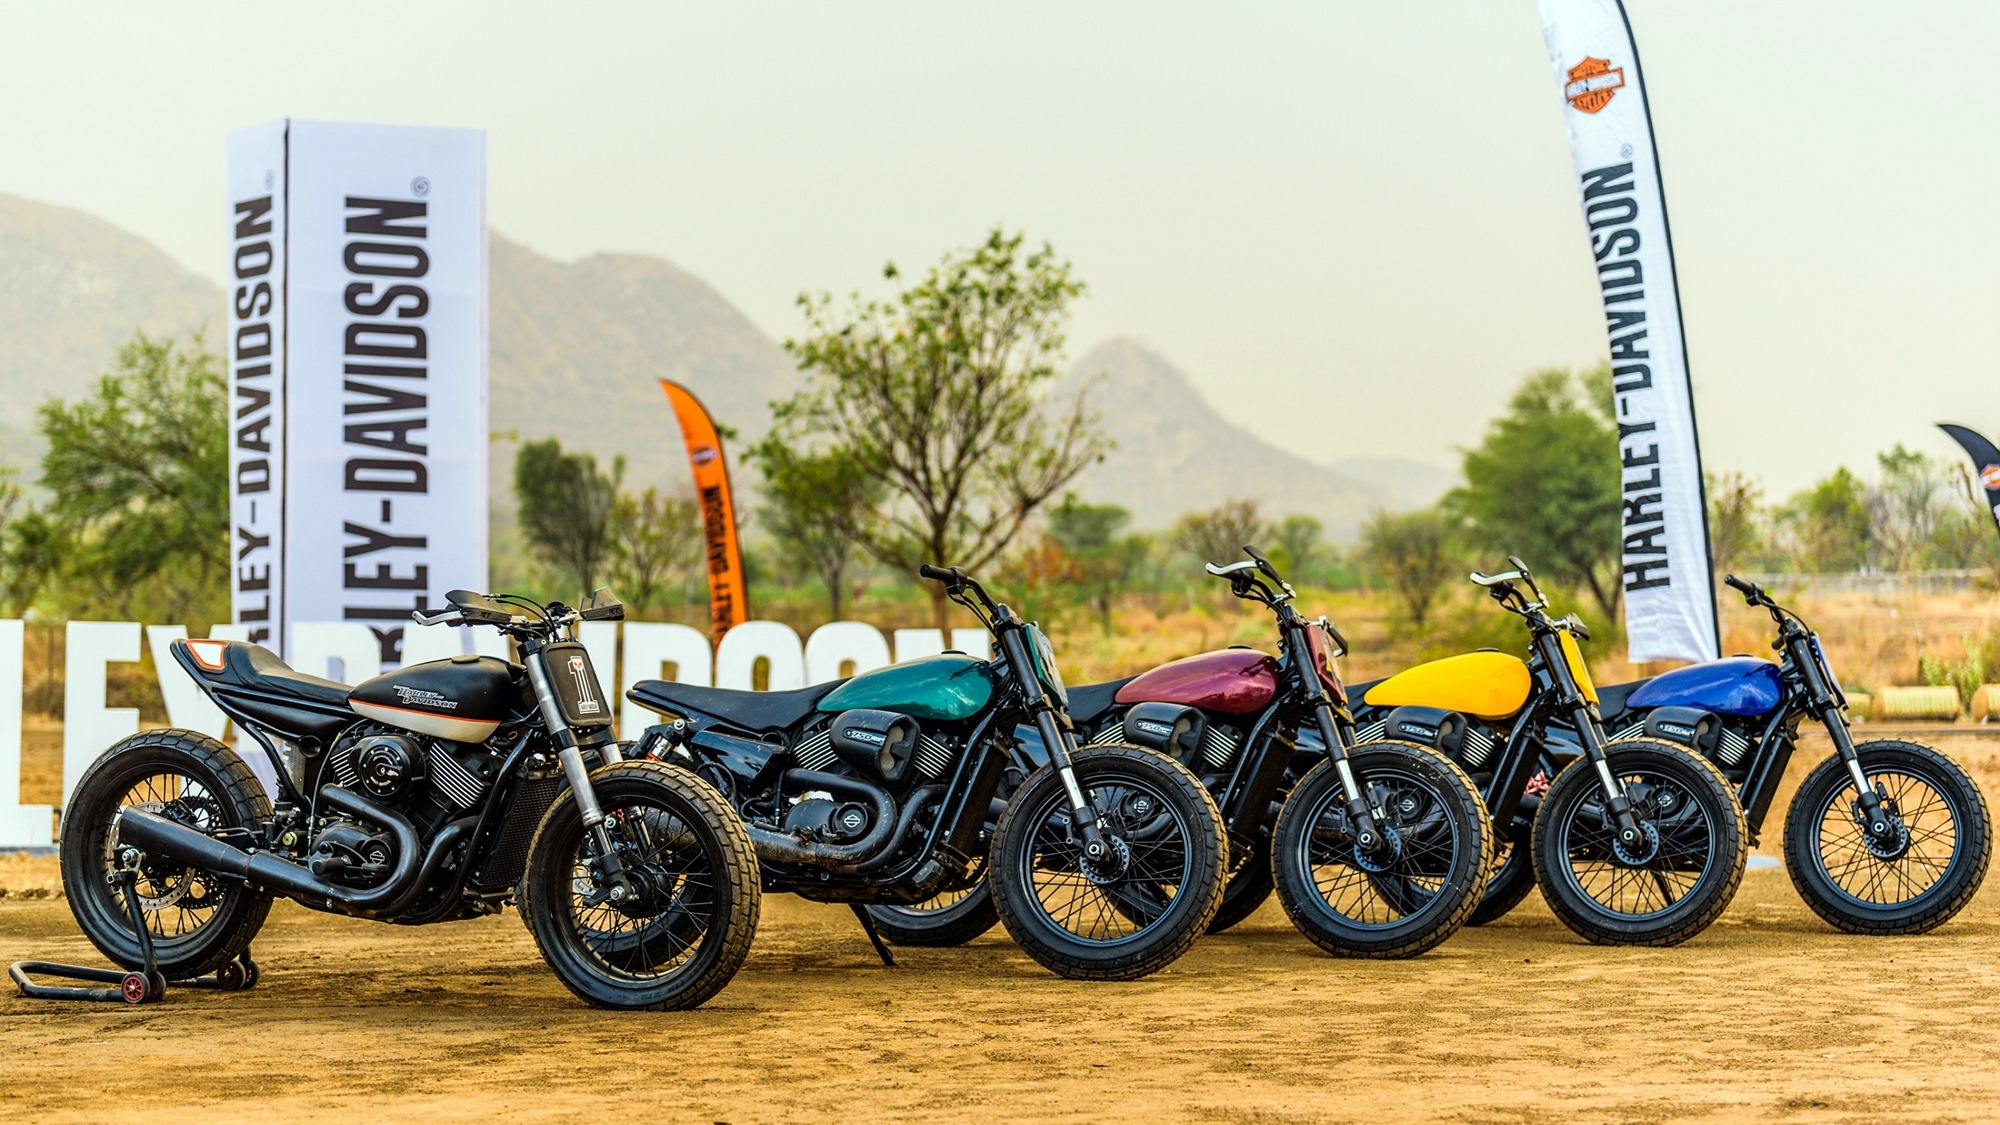 Harley Davidson Flat Track Racing now in India